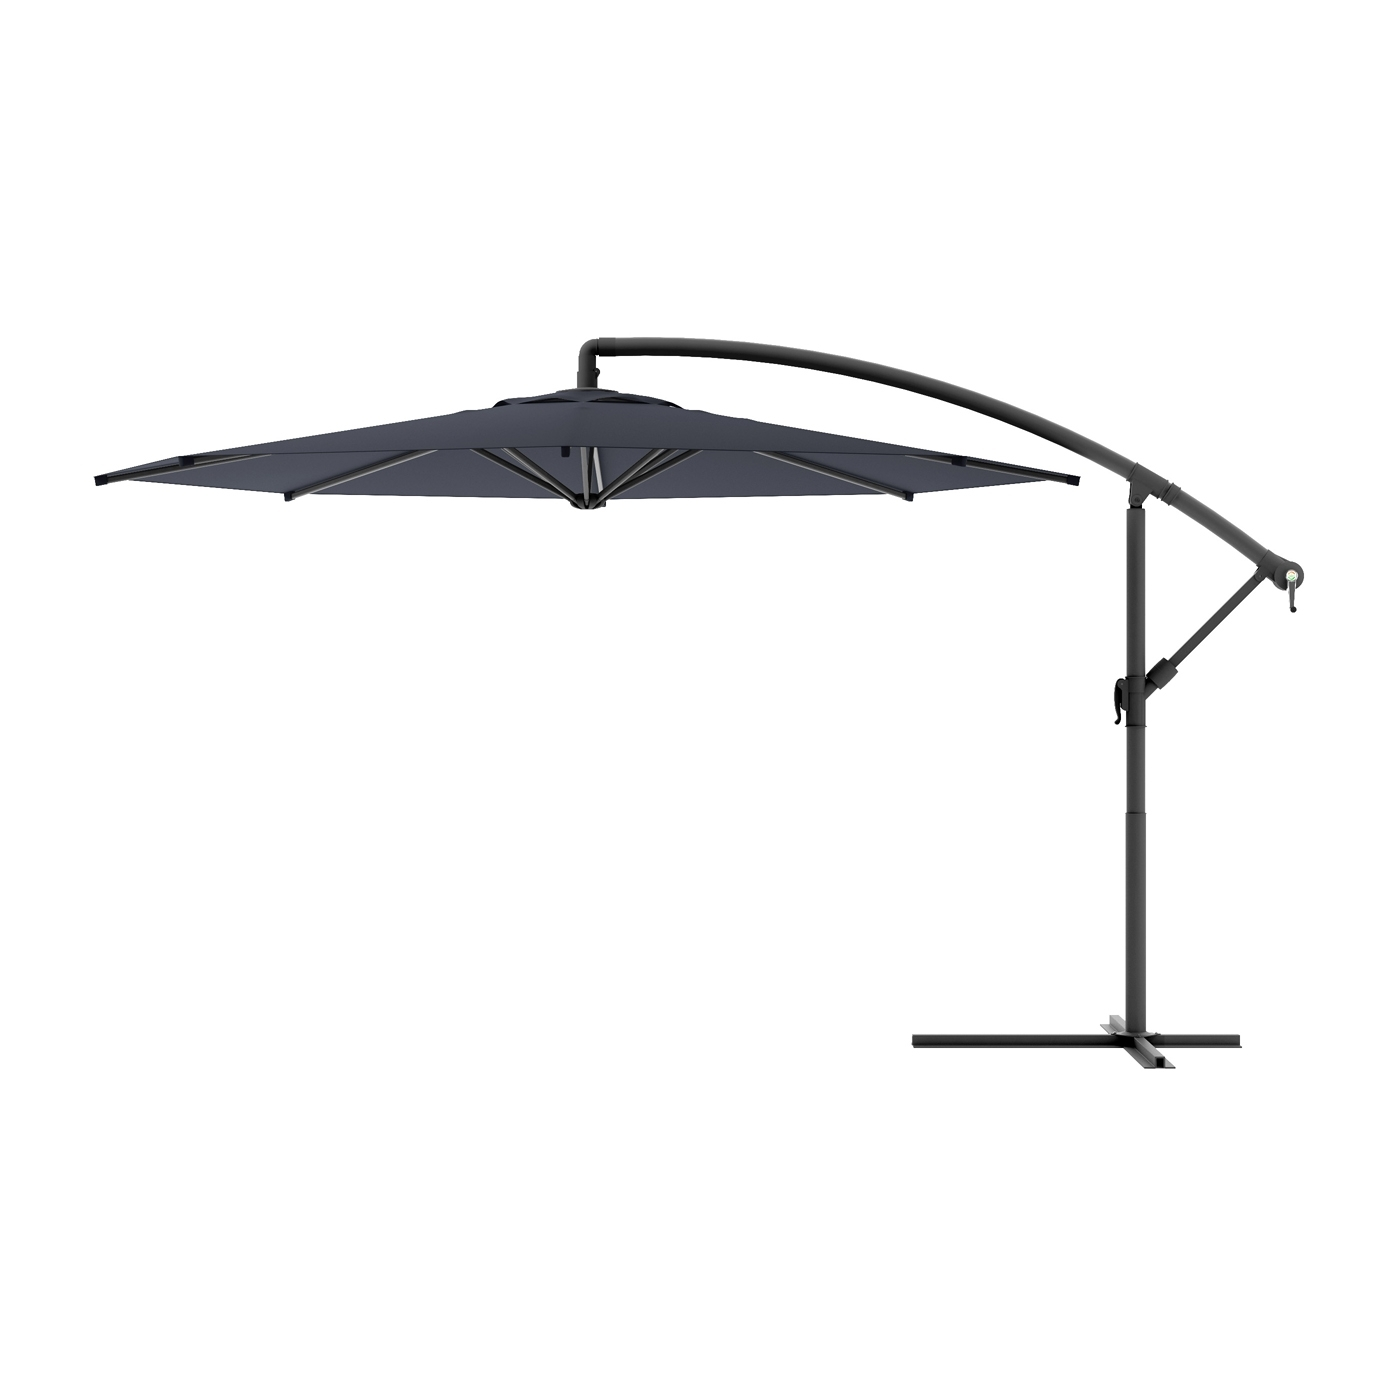 Widely Used Lowes Patio Umbrellas Regarding Corliving Ppu 4 Cantilever Patio Umbrella (View 5 of 20)